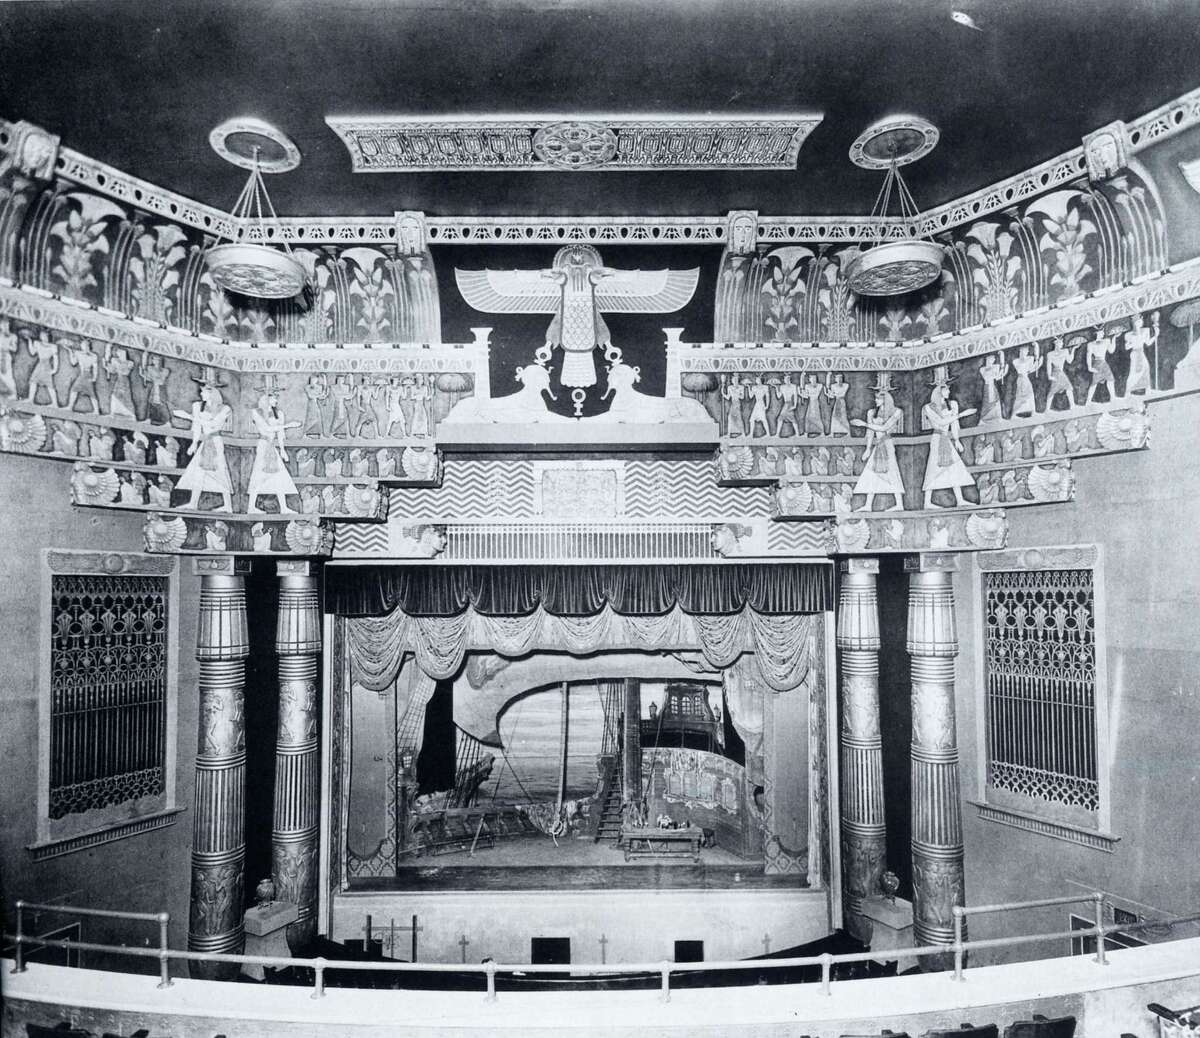 The whacked-out Egyptian-theme interior of the Metropolitan Theatre, circa 1927, when it was at Main and Travis is pictured. It was one of downtown's